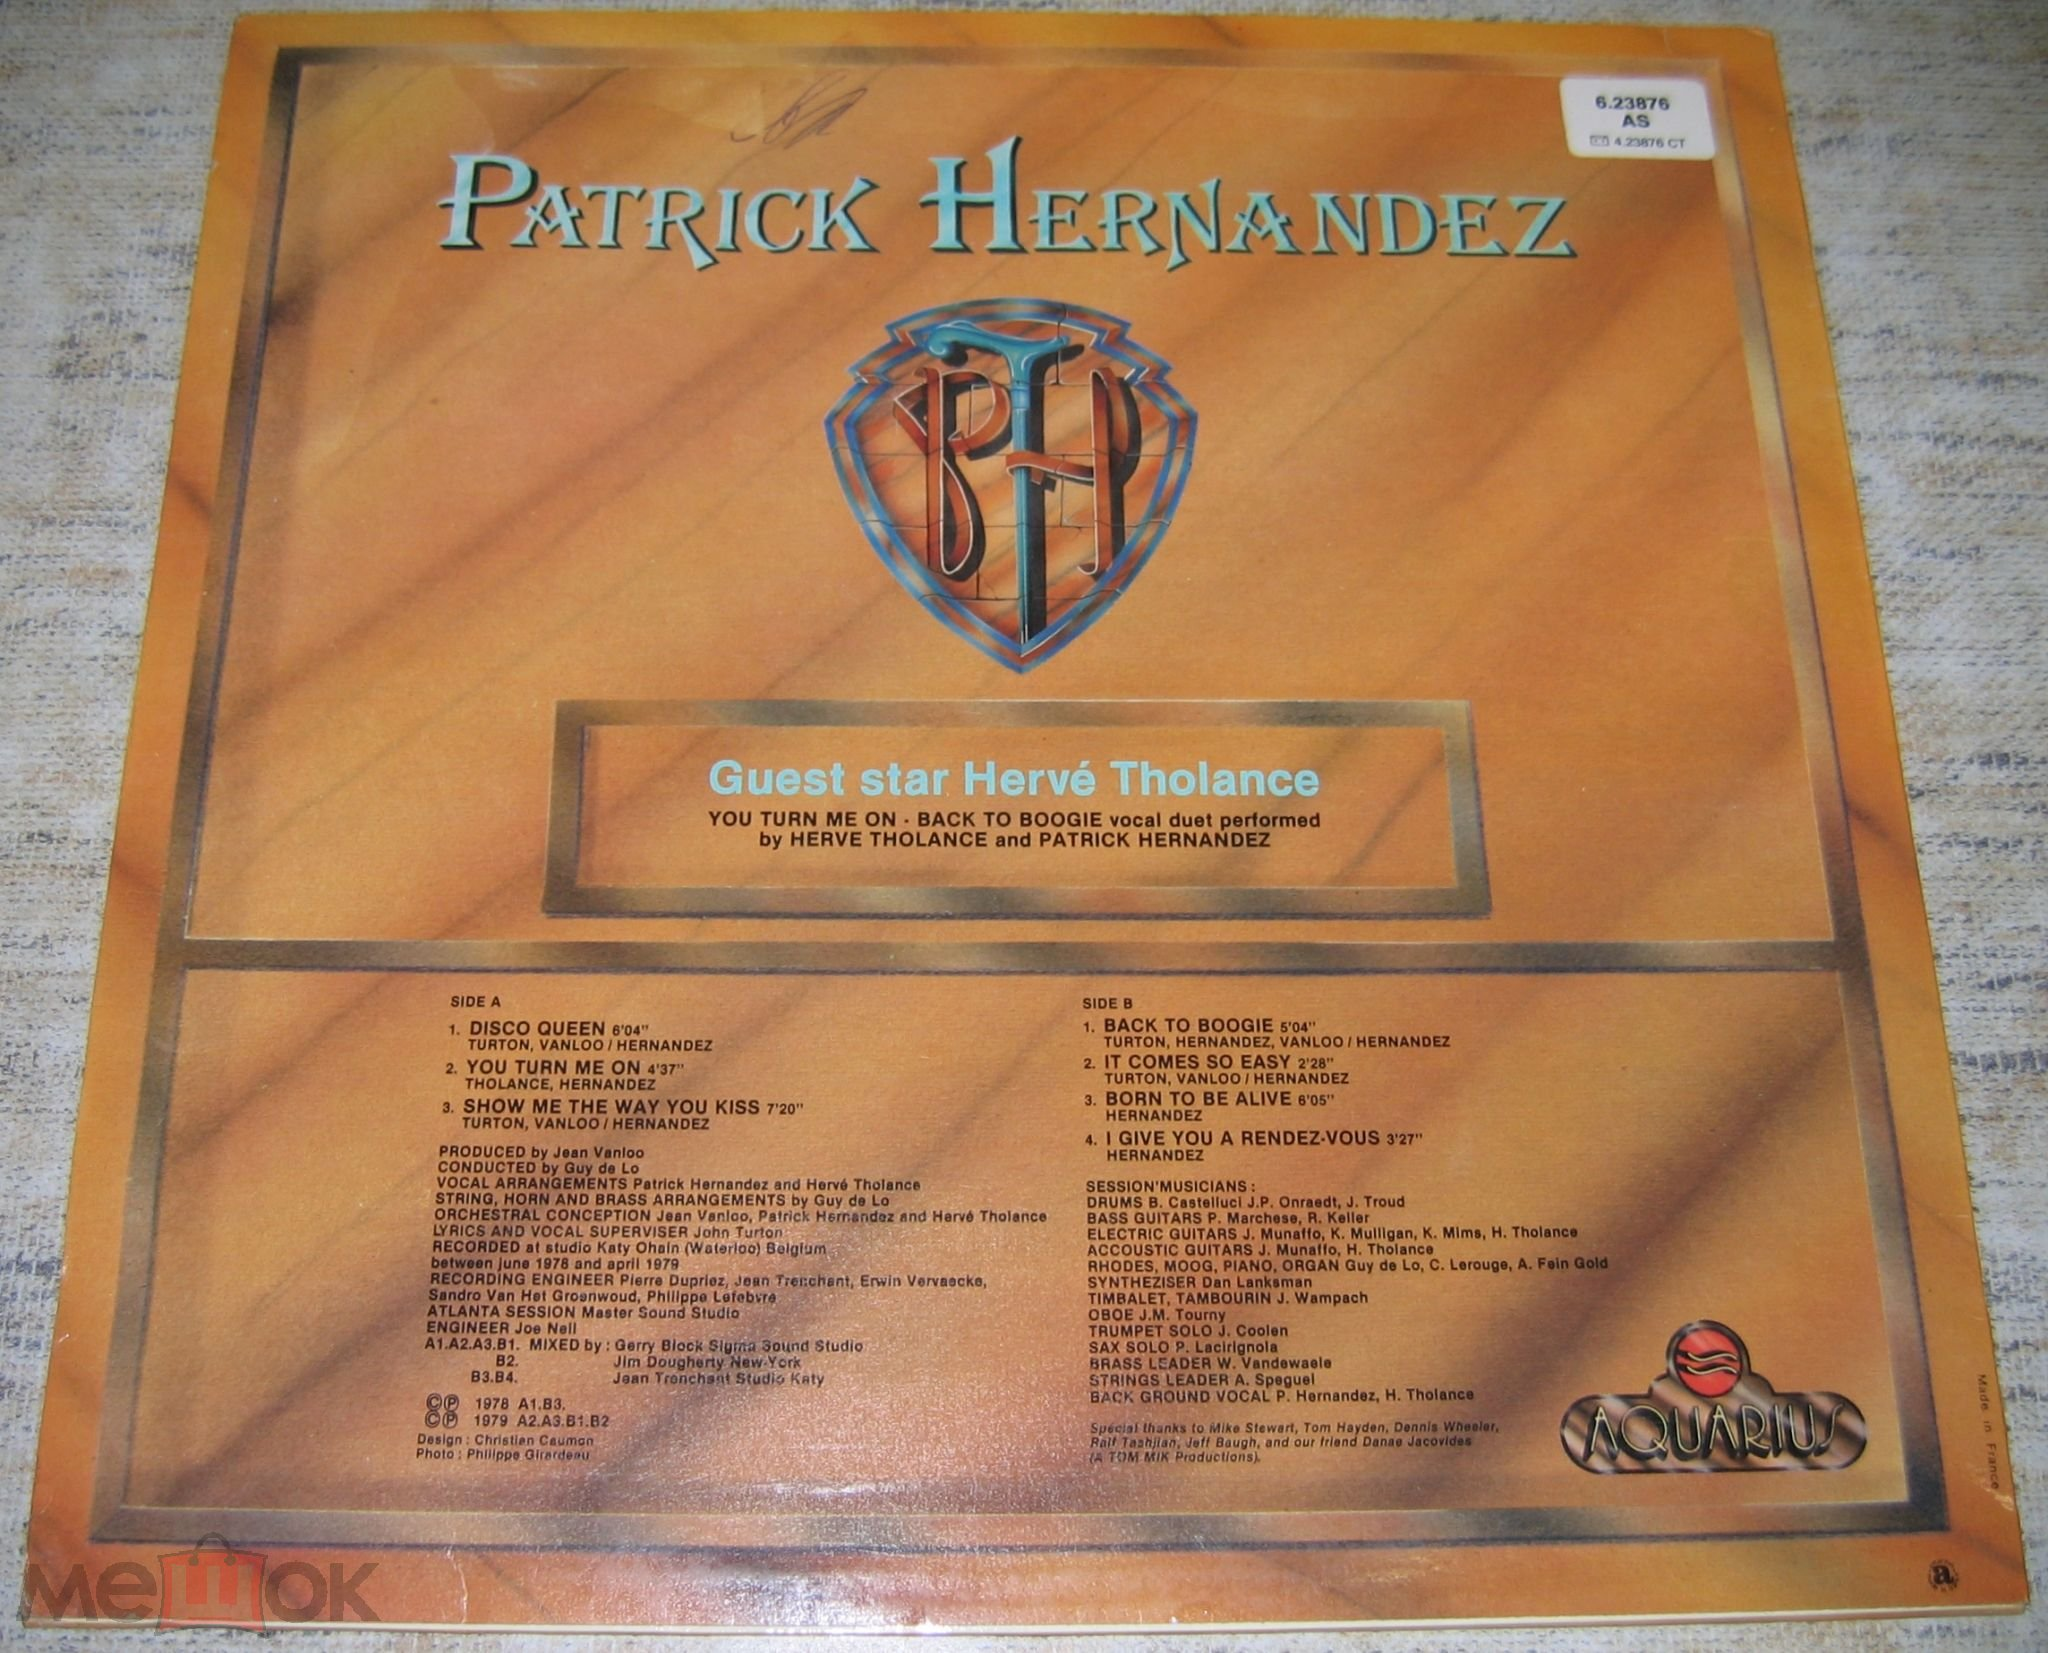 Patrick Hernandez ‎– Born To Be Alive  1979  LP  France